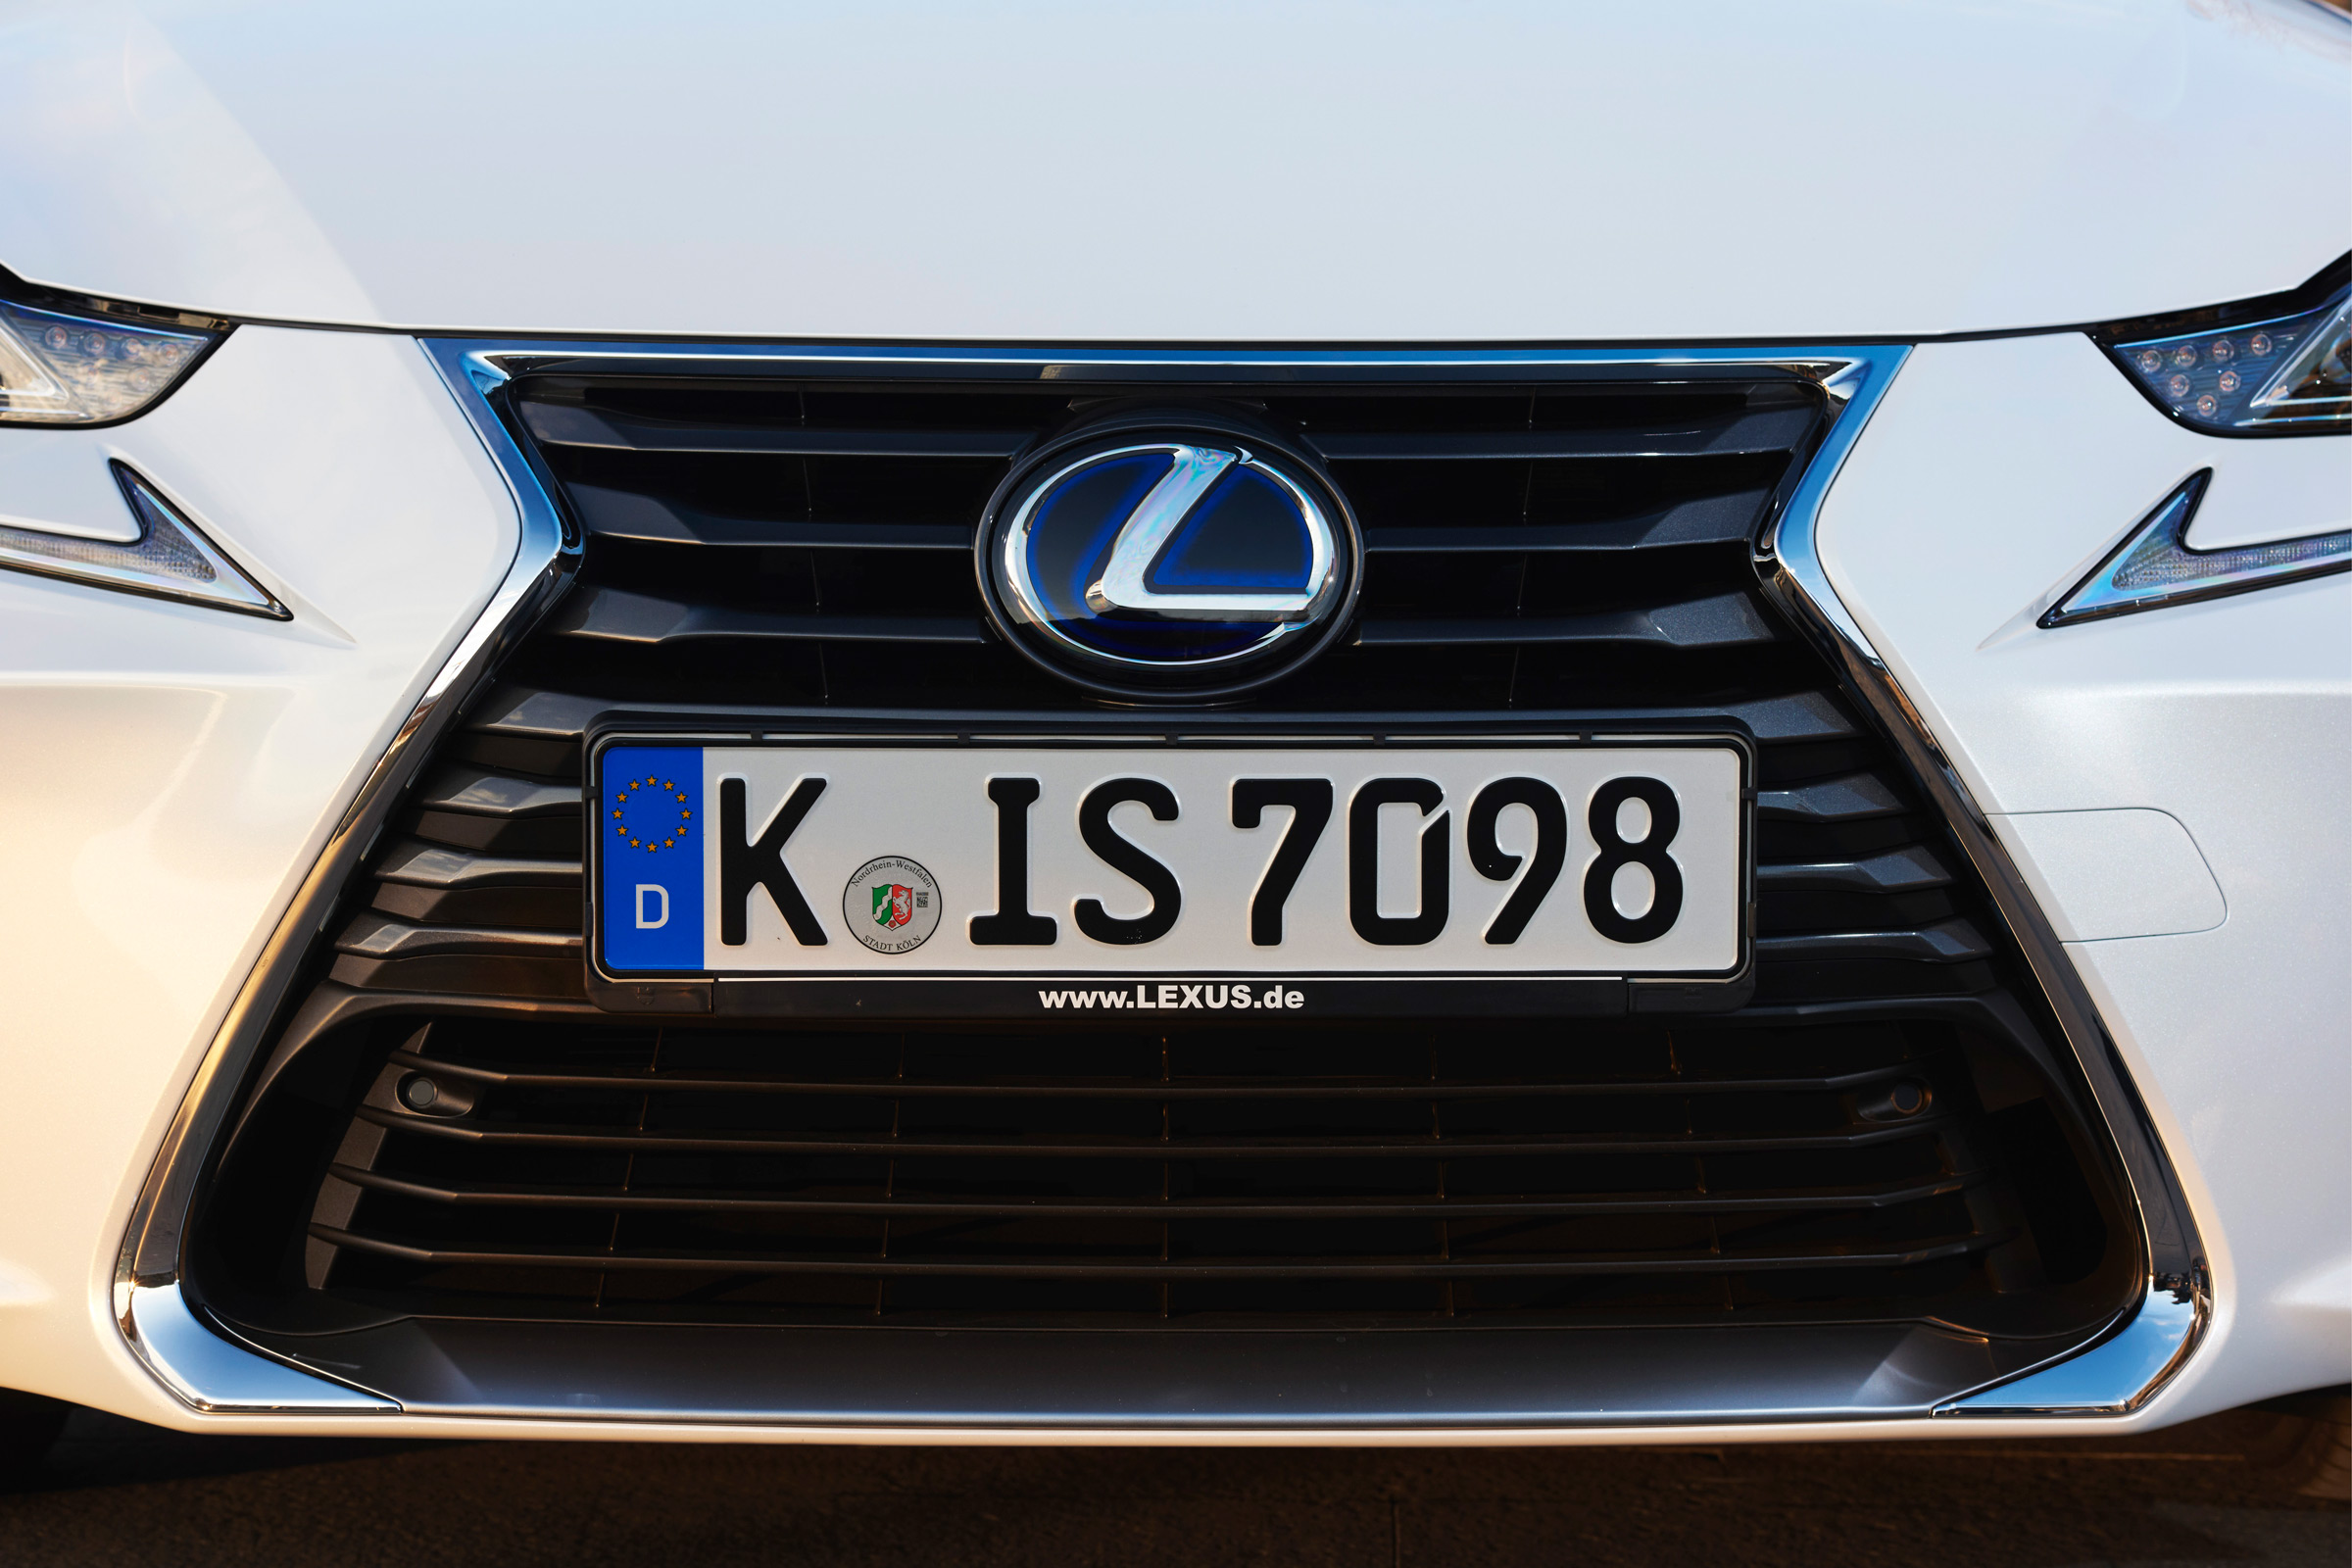 2017 Lexus IS 300h White Exterior View Grille (View 8 of 13)